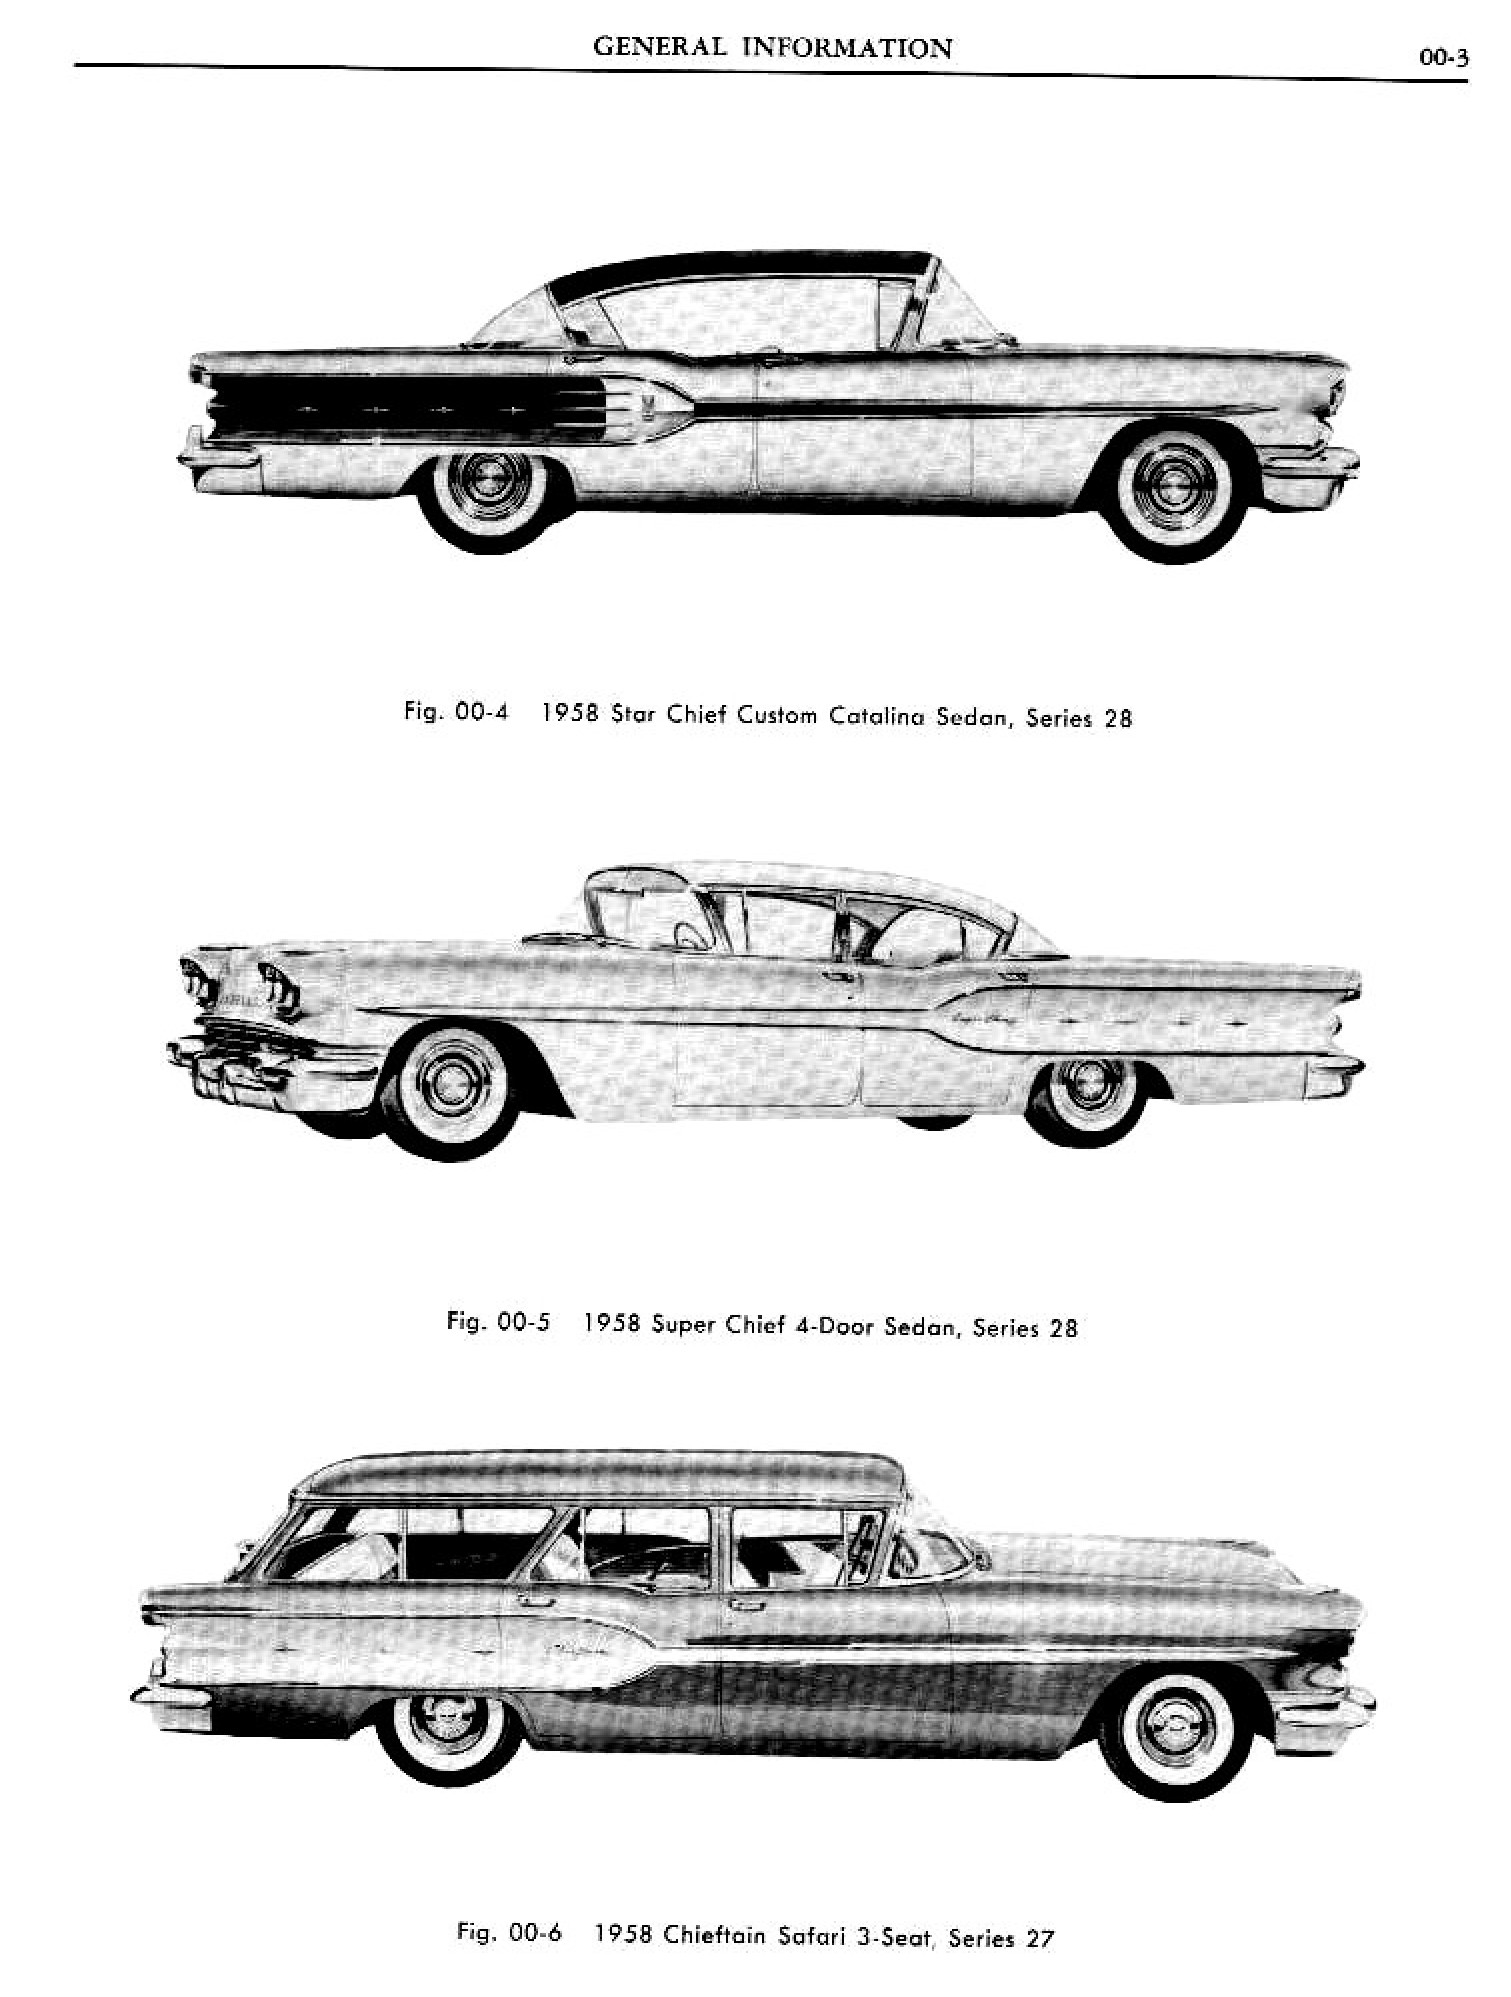 1958 Pontiac Shop Manual- Gen Information Page 4 of 7